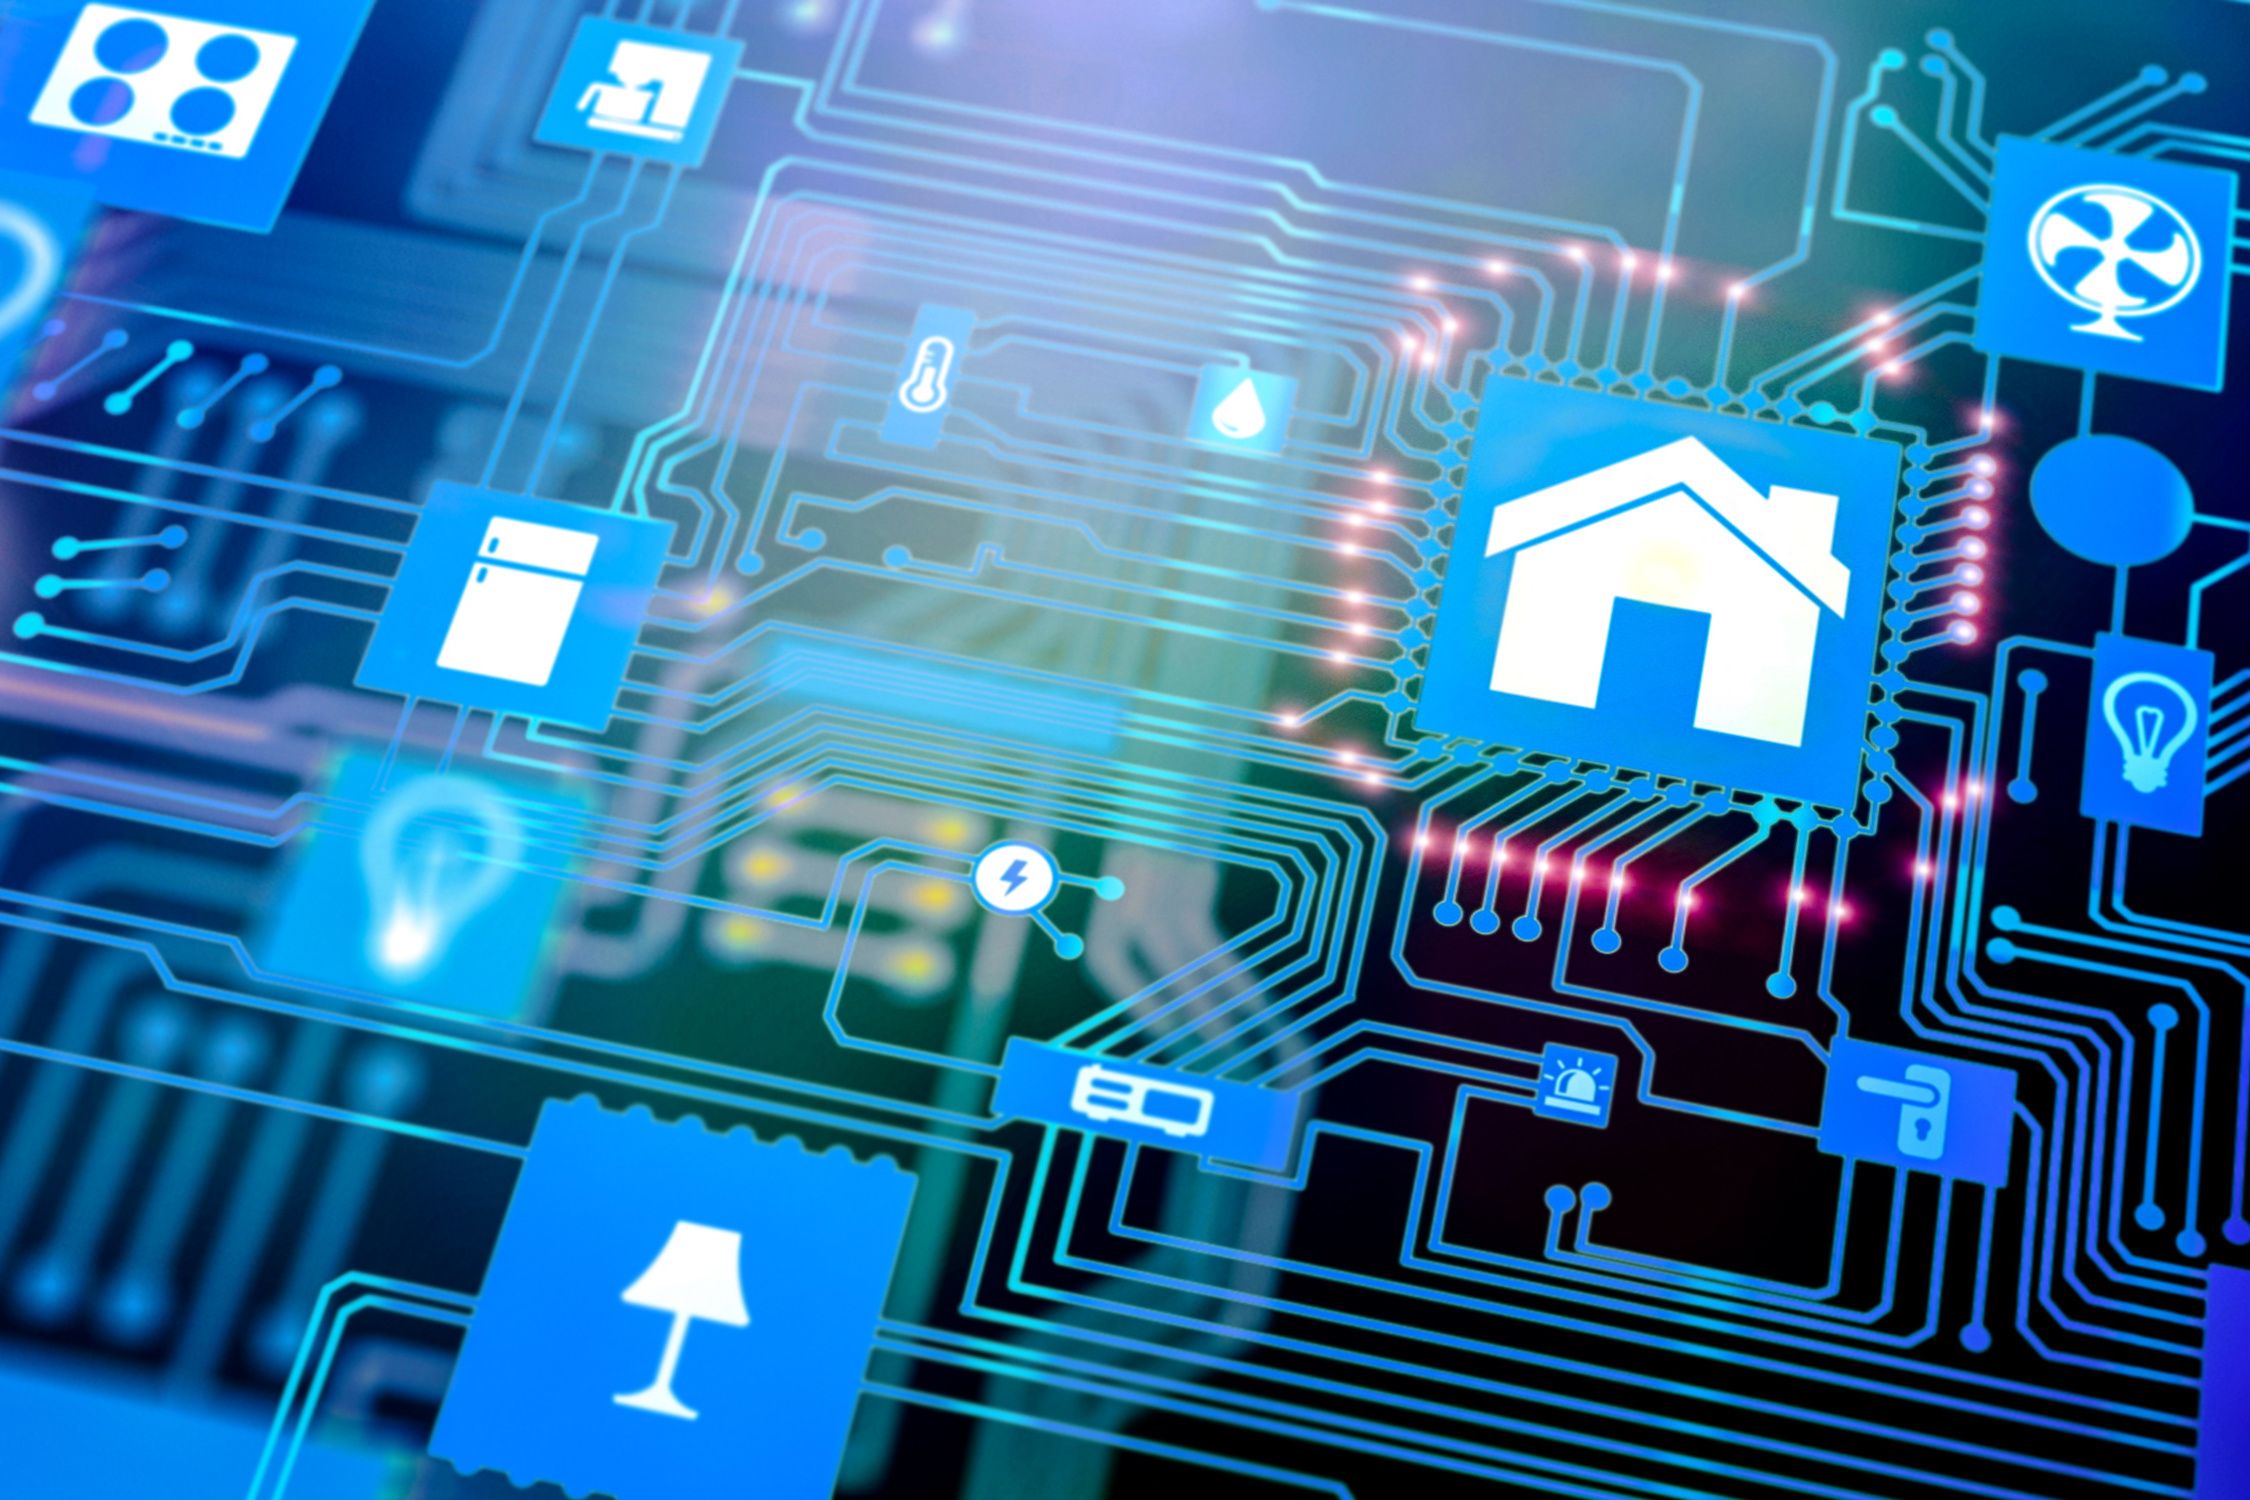 Implementation of smart solutions in utilities sector and building automation